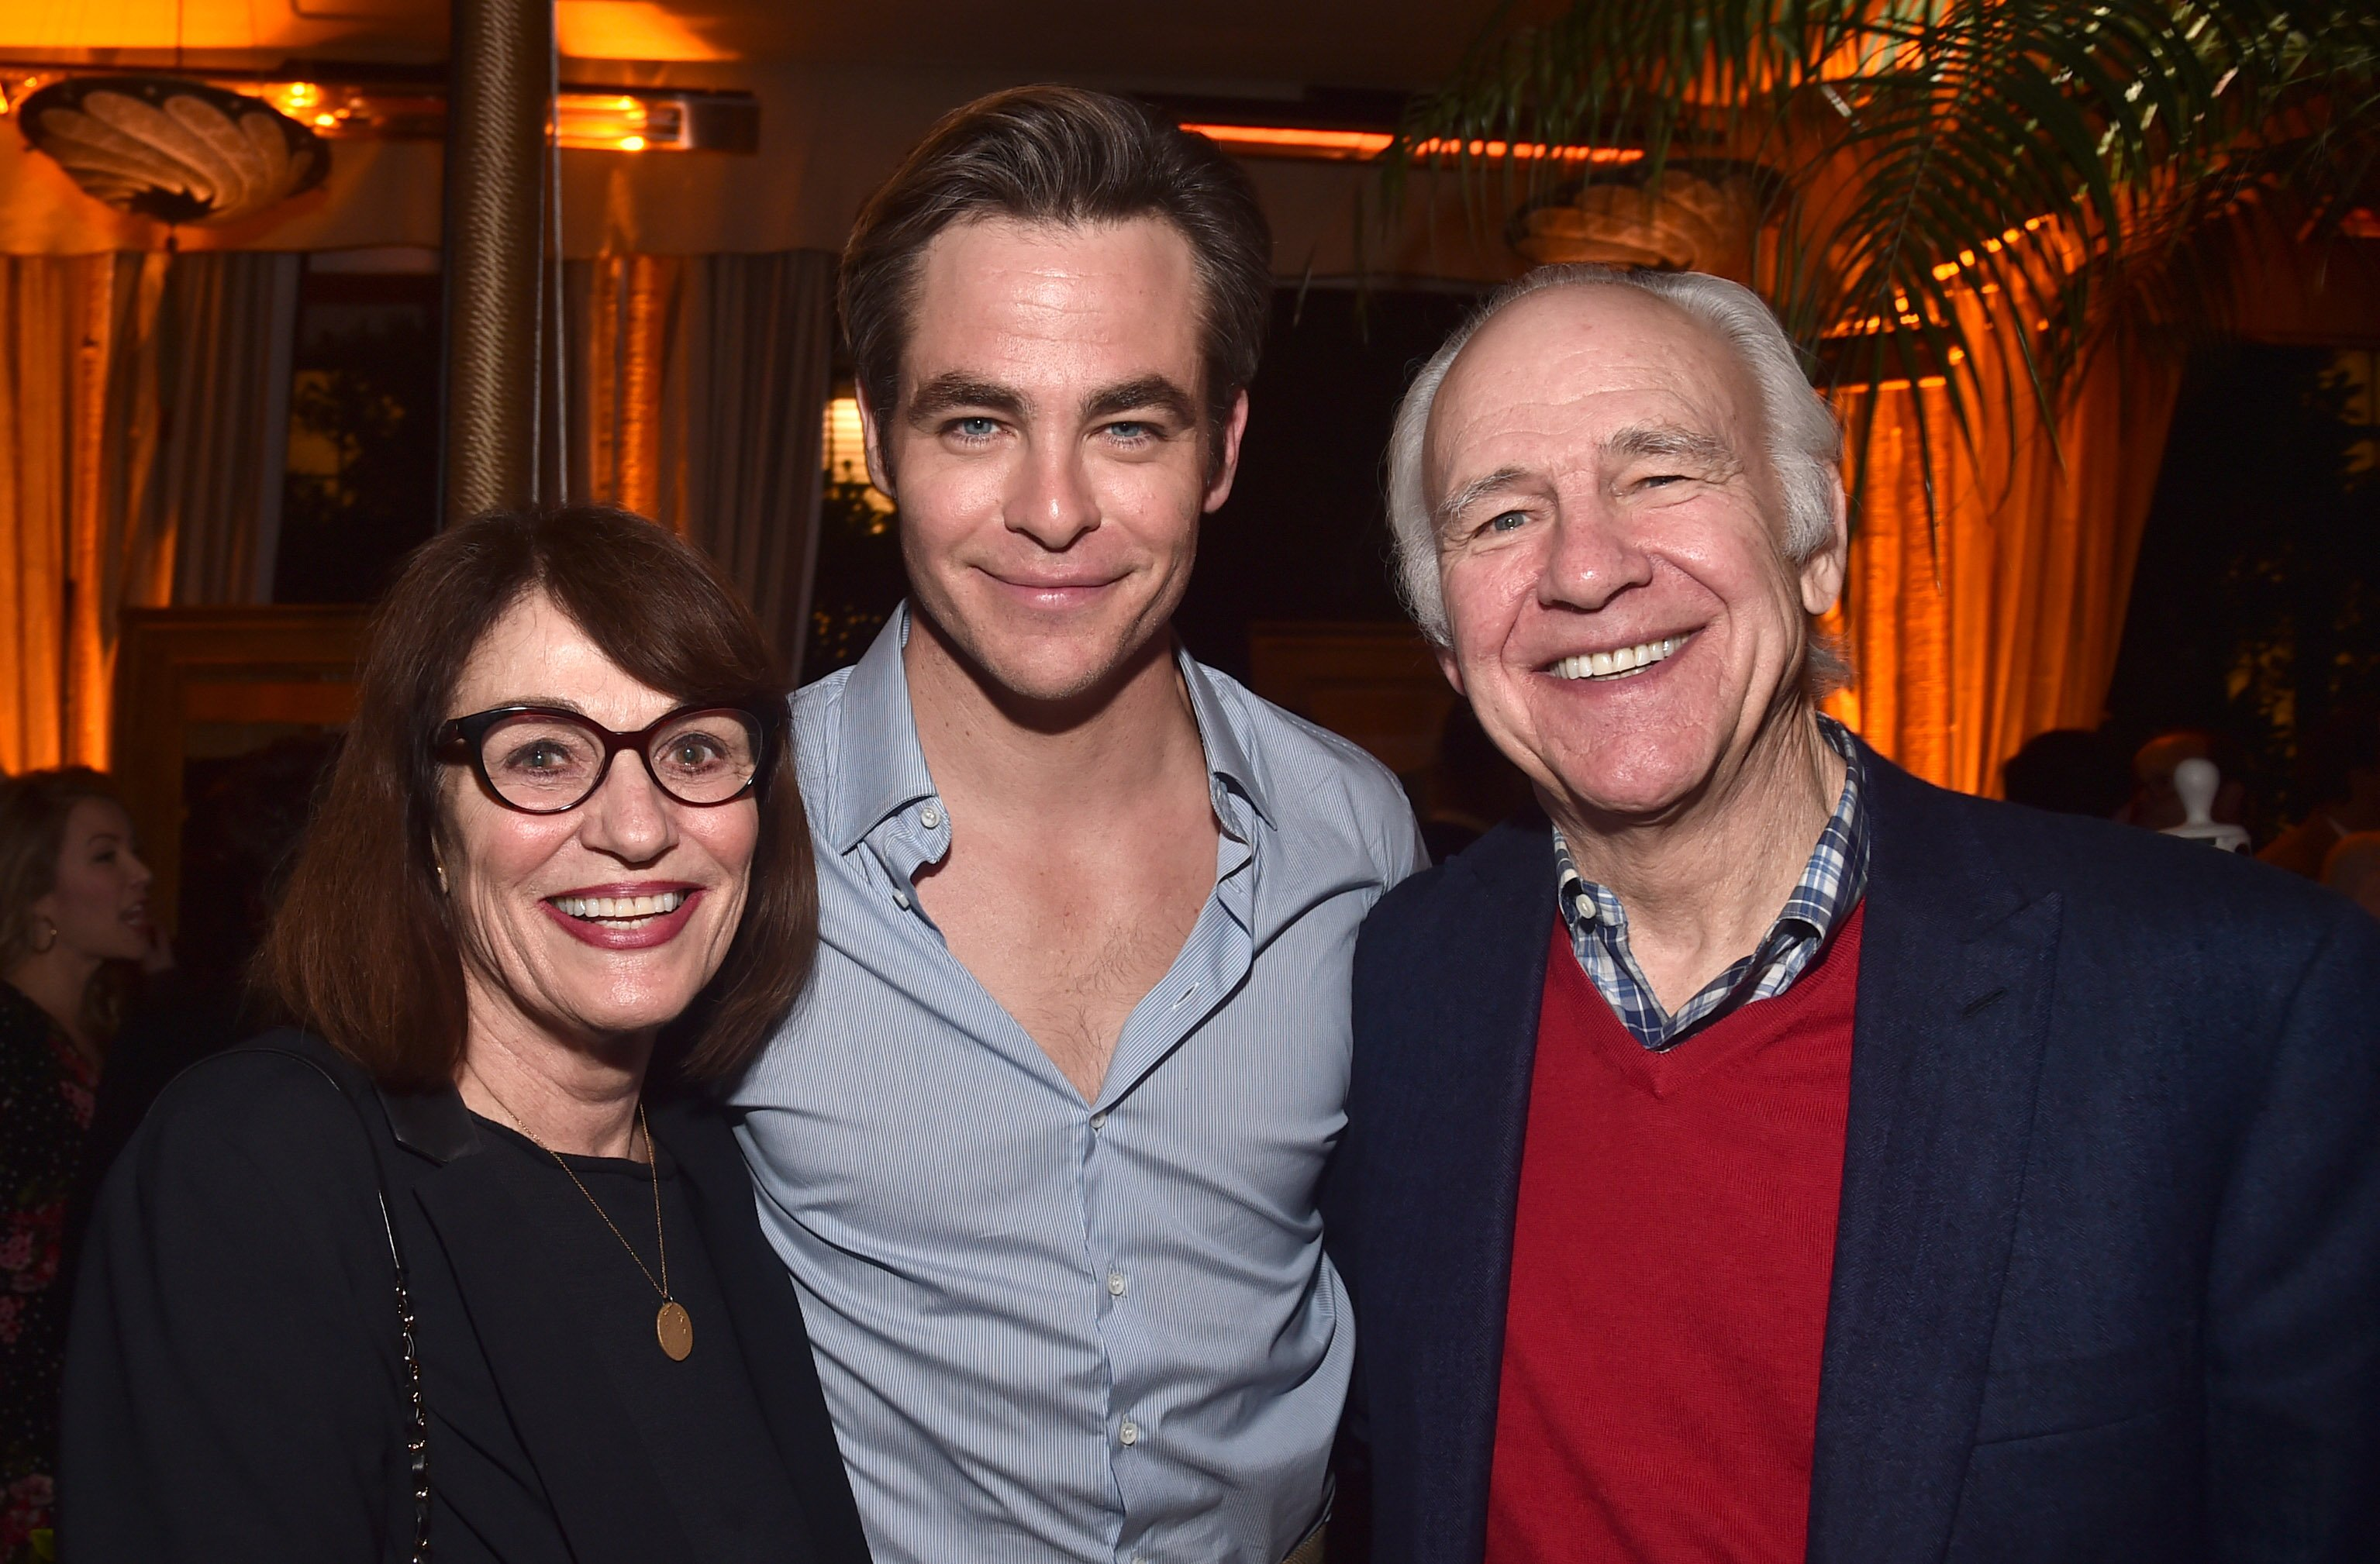 """Gwynne Gilford, Chris Pine and Robert Pine attend the after party for the premiere of TNT's """"I Am The Night"""" on January 24, 2019 in Los Angeles, California.  Source: Getty Images"""